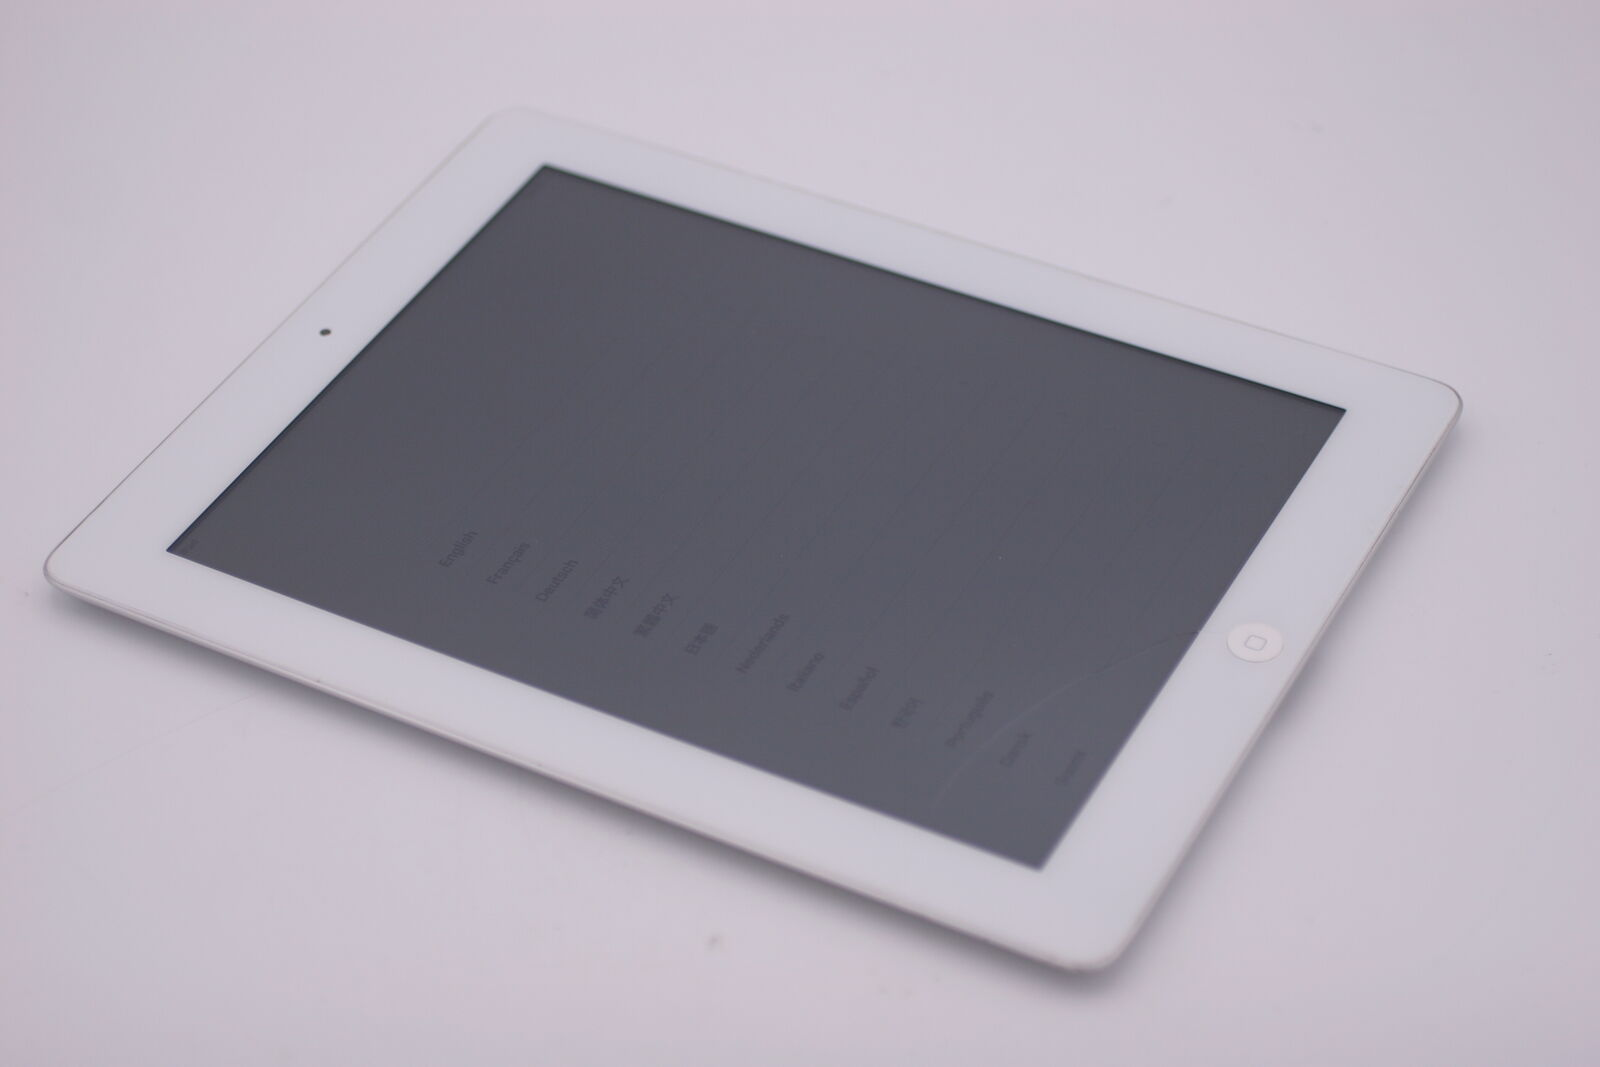 Apple iPad 2 64GB Wi-Fi 9.7in White MC981LL/A A1395 IOS9.3.5